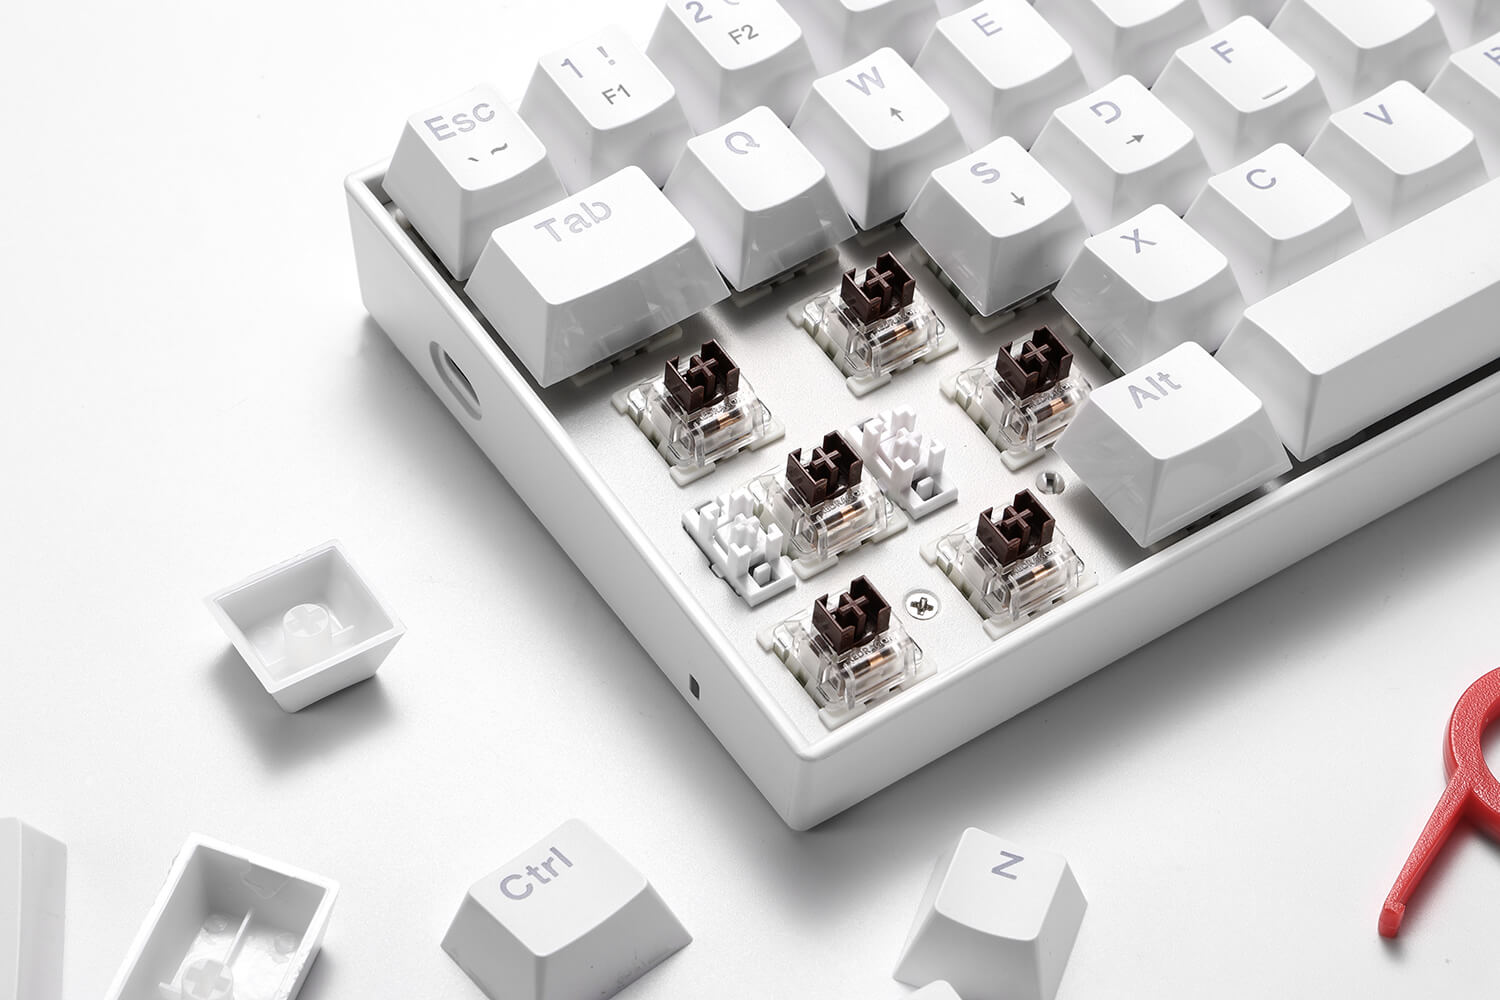 60 keyboard with brown switch